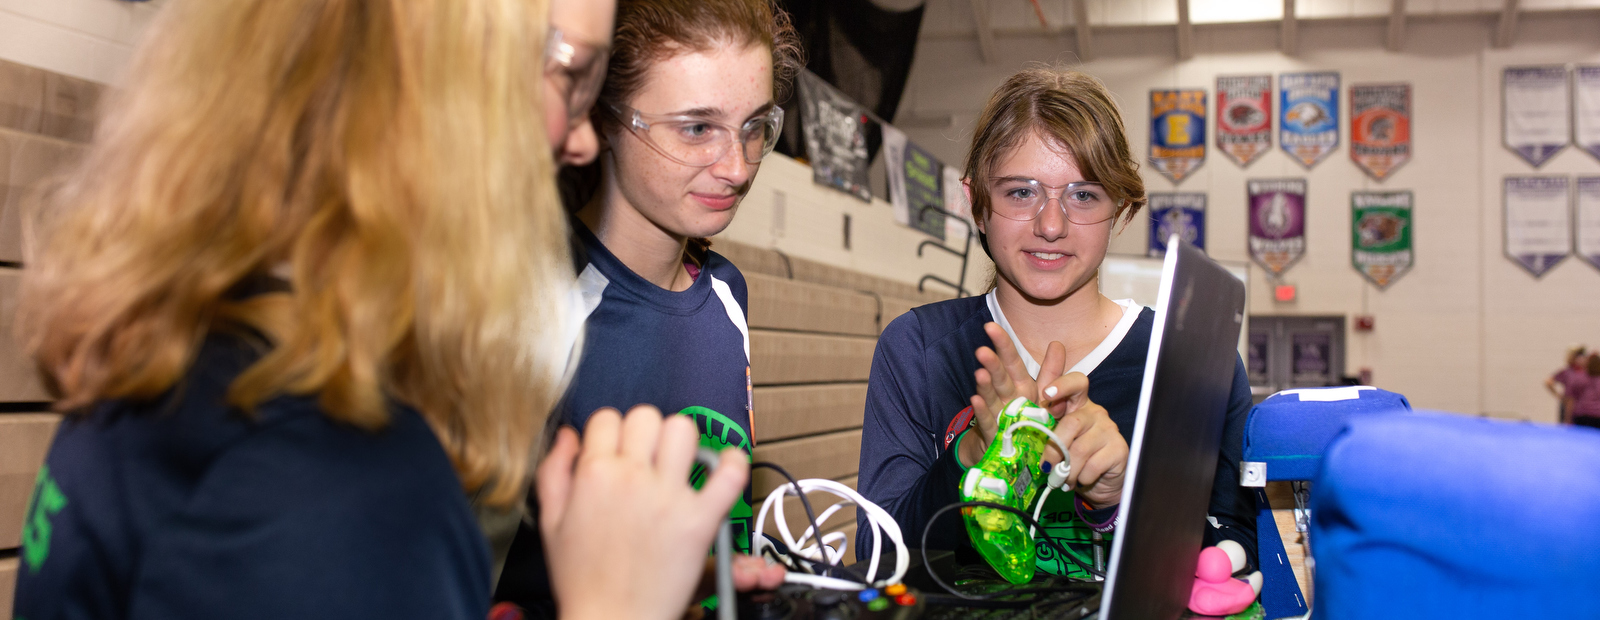 Students and their robots compete against each other in WM's Annual Girls Robotics Competition.